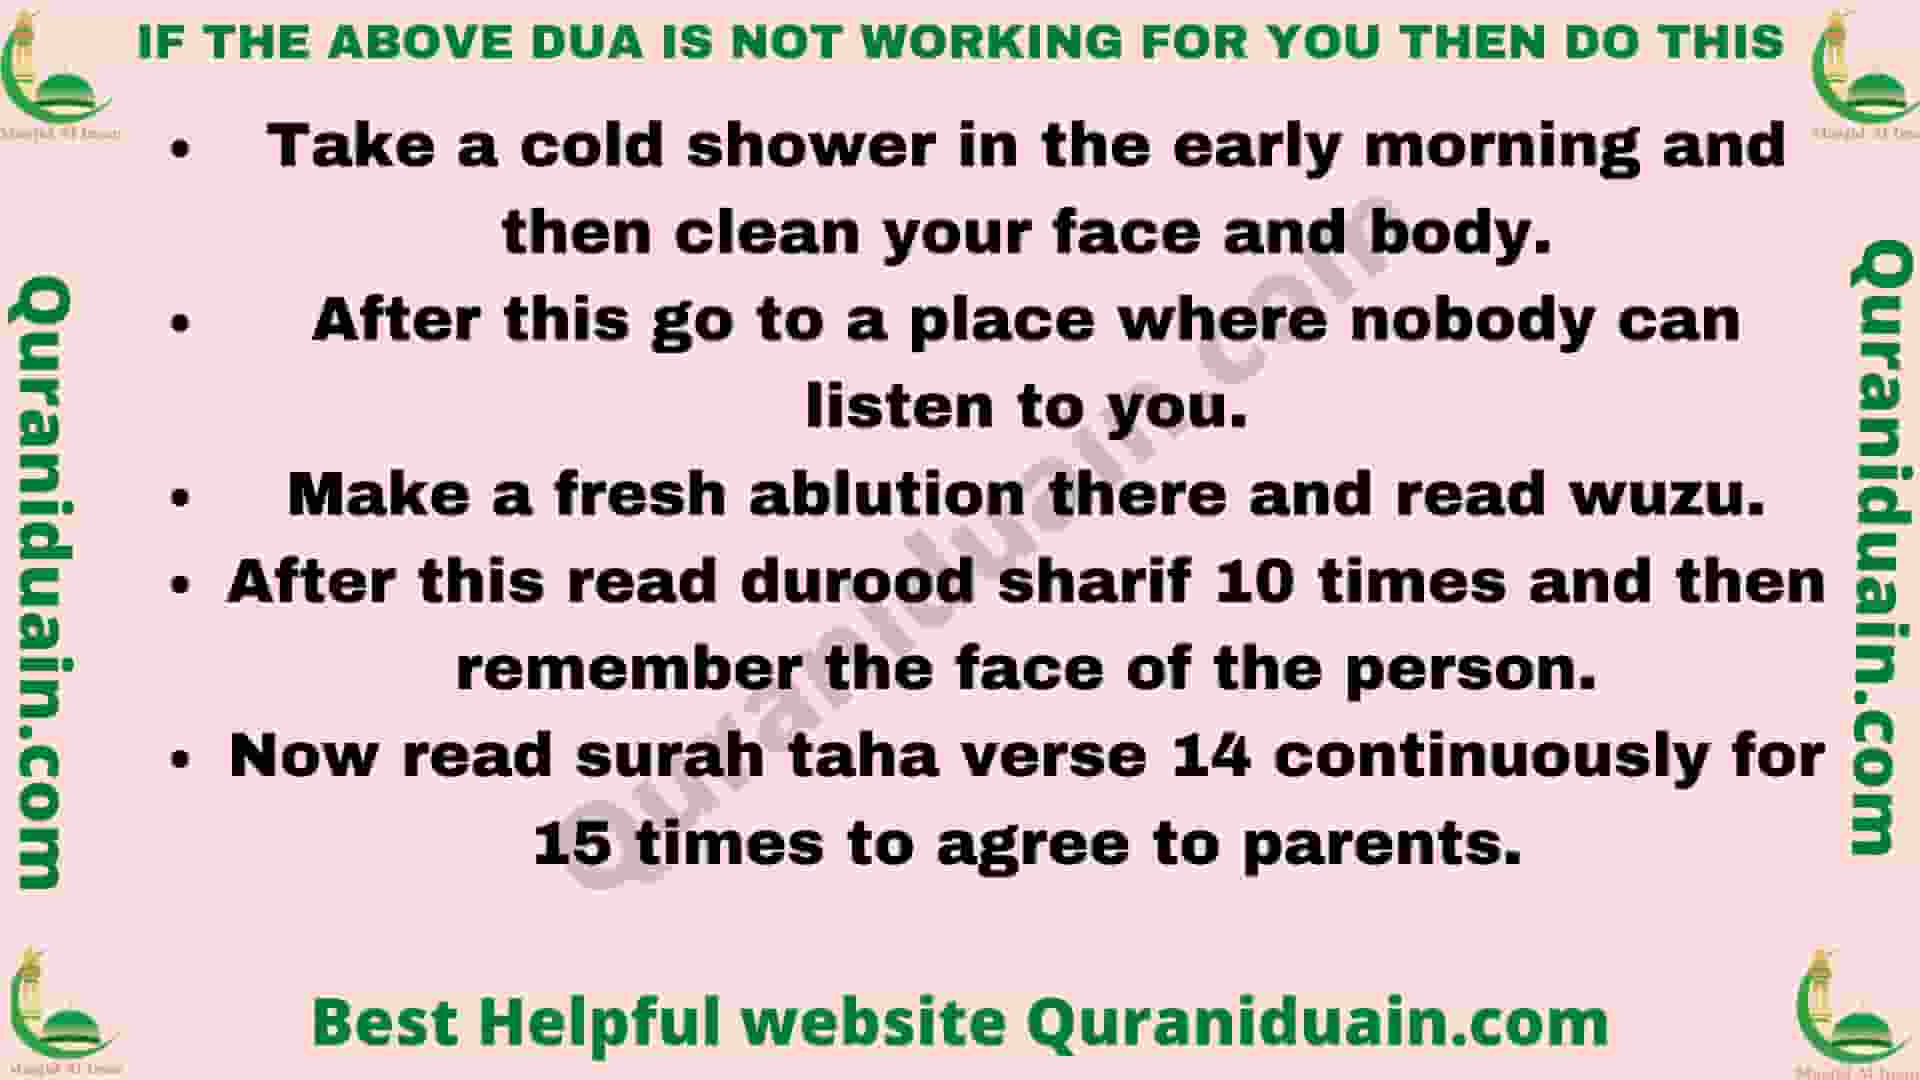 If The Above Dua Is Not Working For You Then Do This